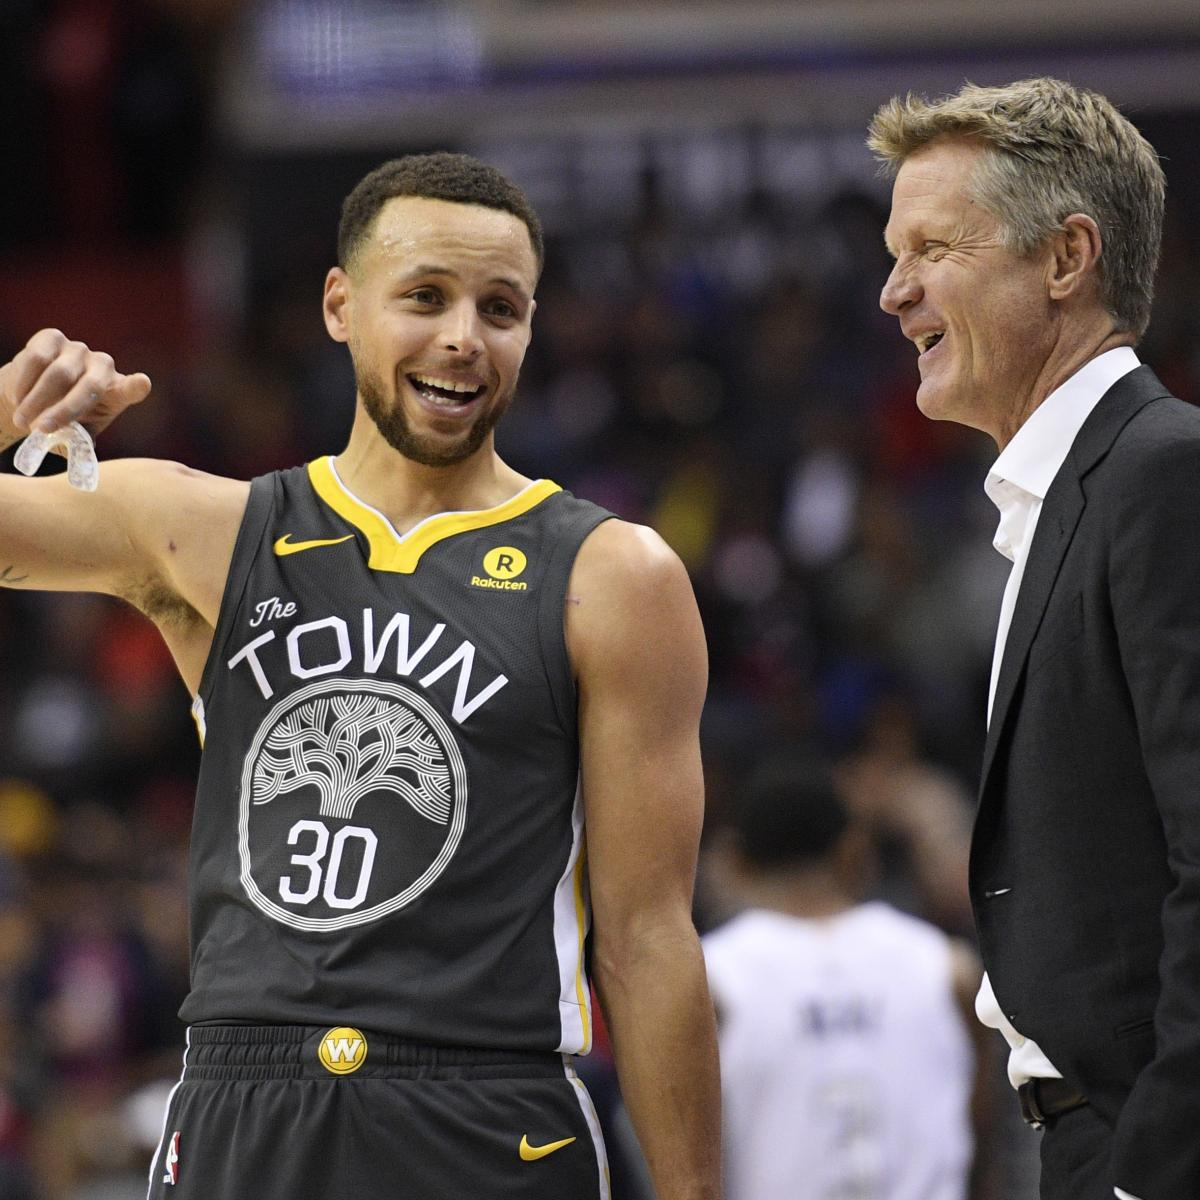 Golden State Warriors Record Without Steph Curry: Steve Kerr Says Stephen Curry 'Turned A Corner' After Game